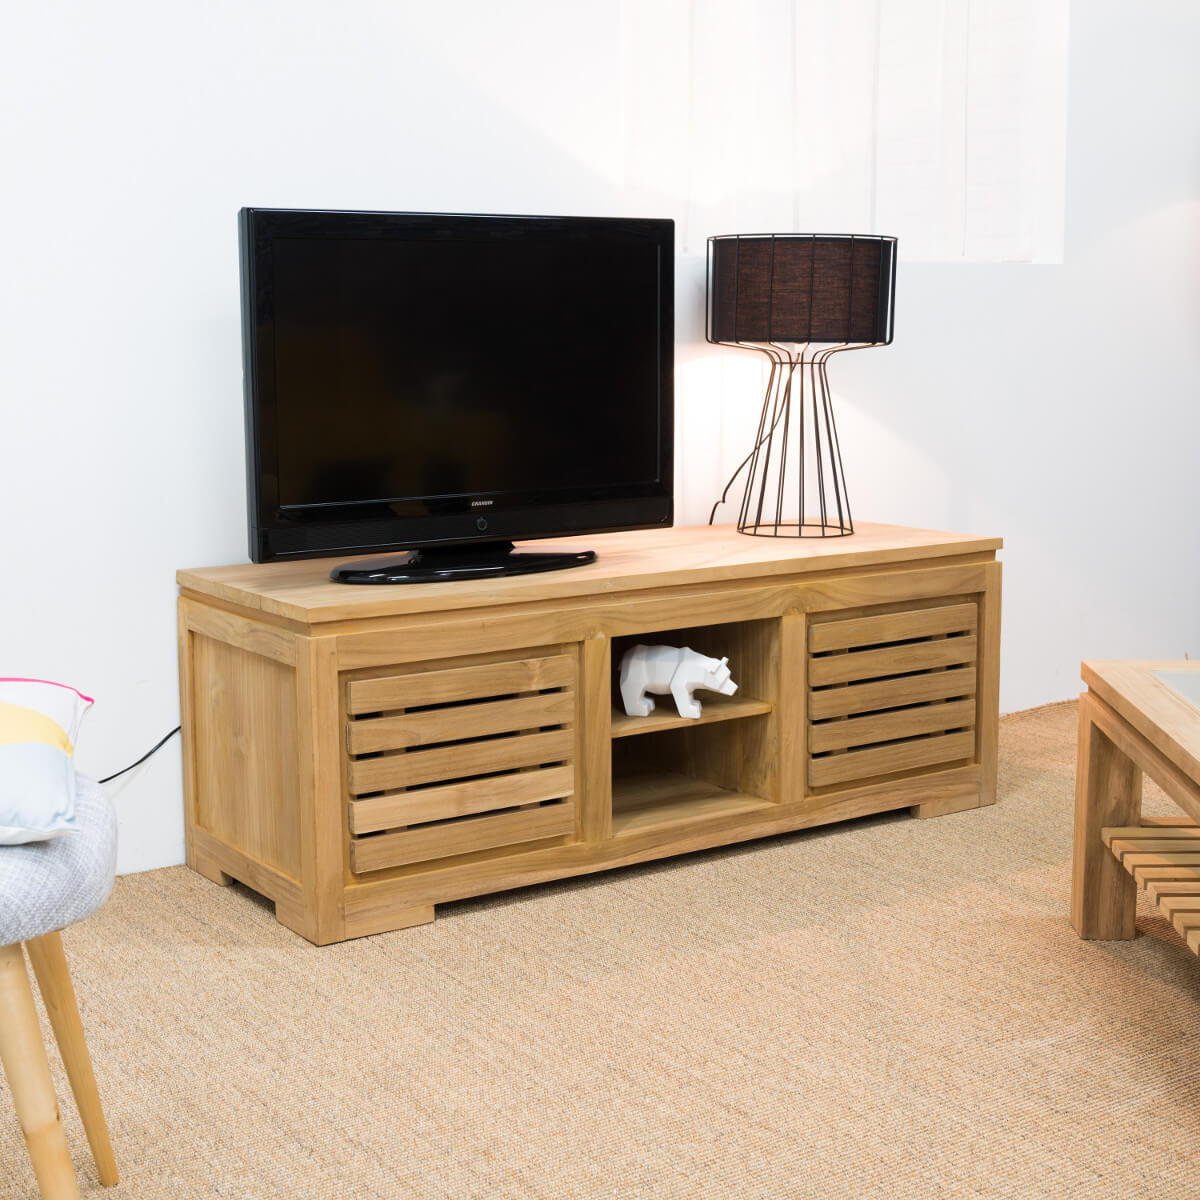 Meuble tv teck meuble tv bois naturel rectangle zen for Meuble de tele en bois